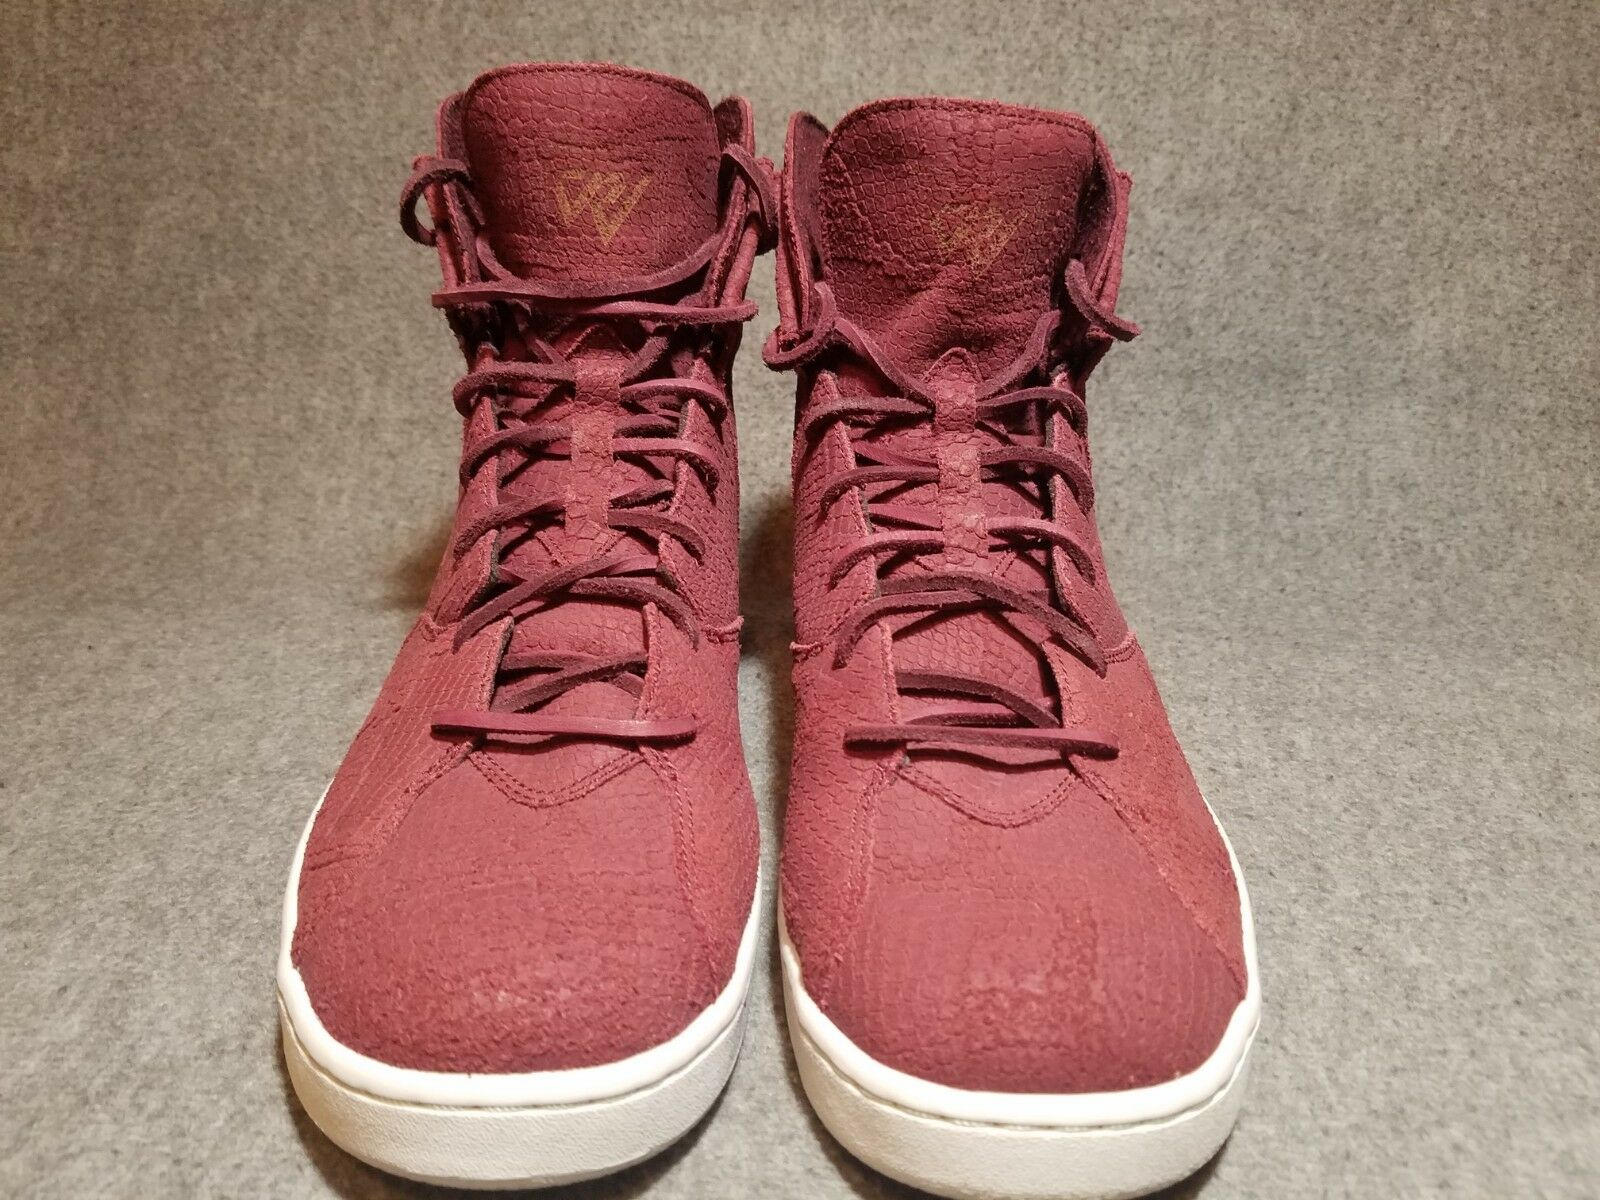 NIKE AIR JORDAN WESTBROOK 0.2 Size 10.5